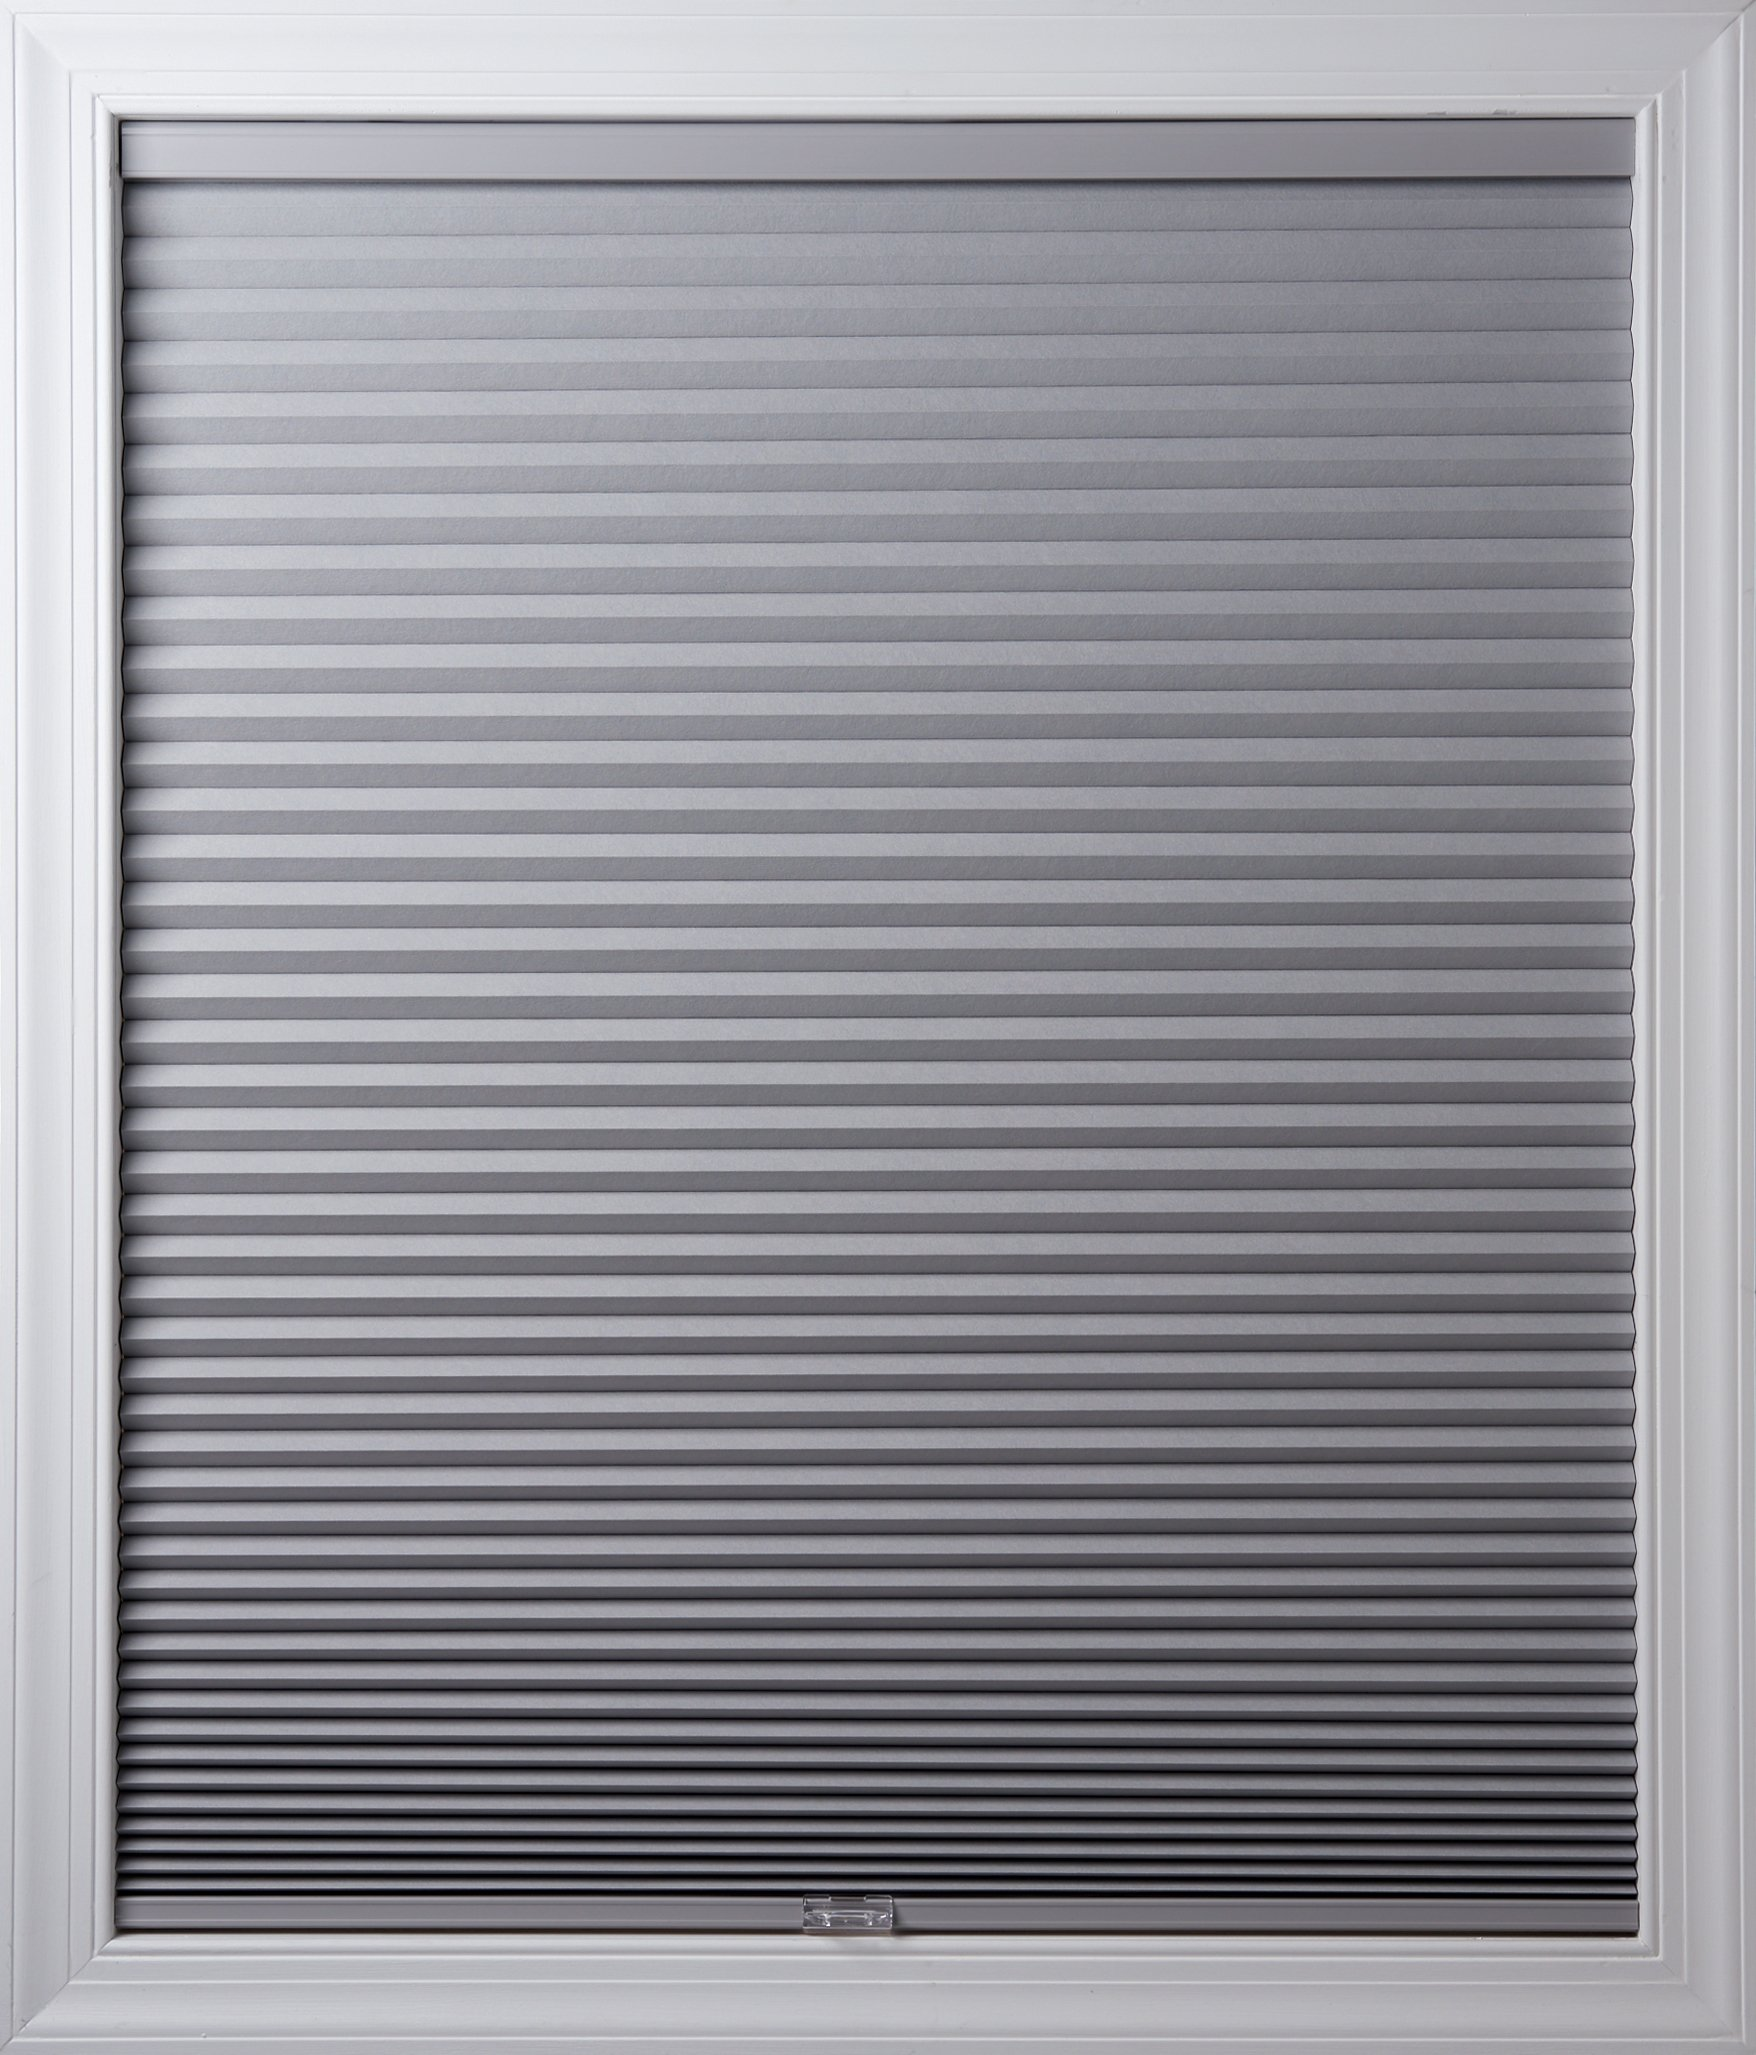 New Age Blinds Room Darkening Inside Frame Mount Cordless Cellular Shade 42-1/2 x 48-Inch Gray Sheen by New Age Blinds